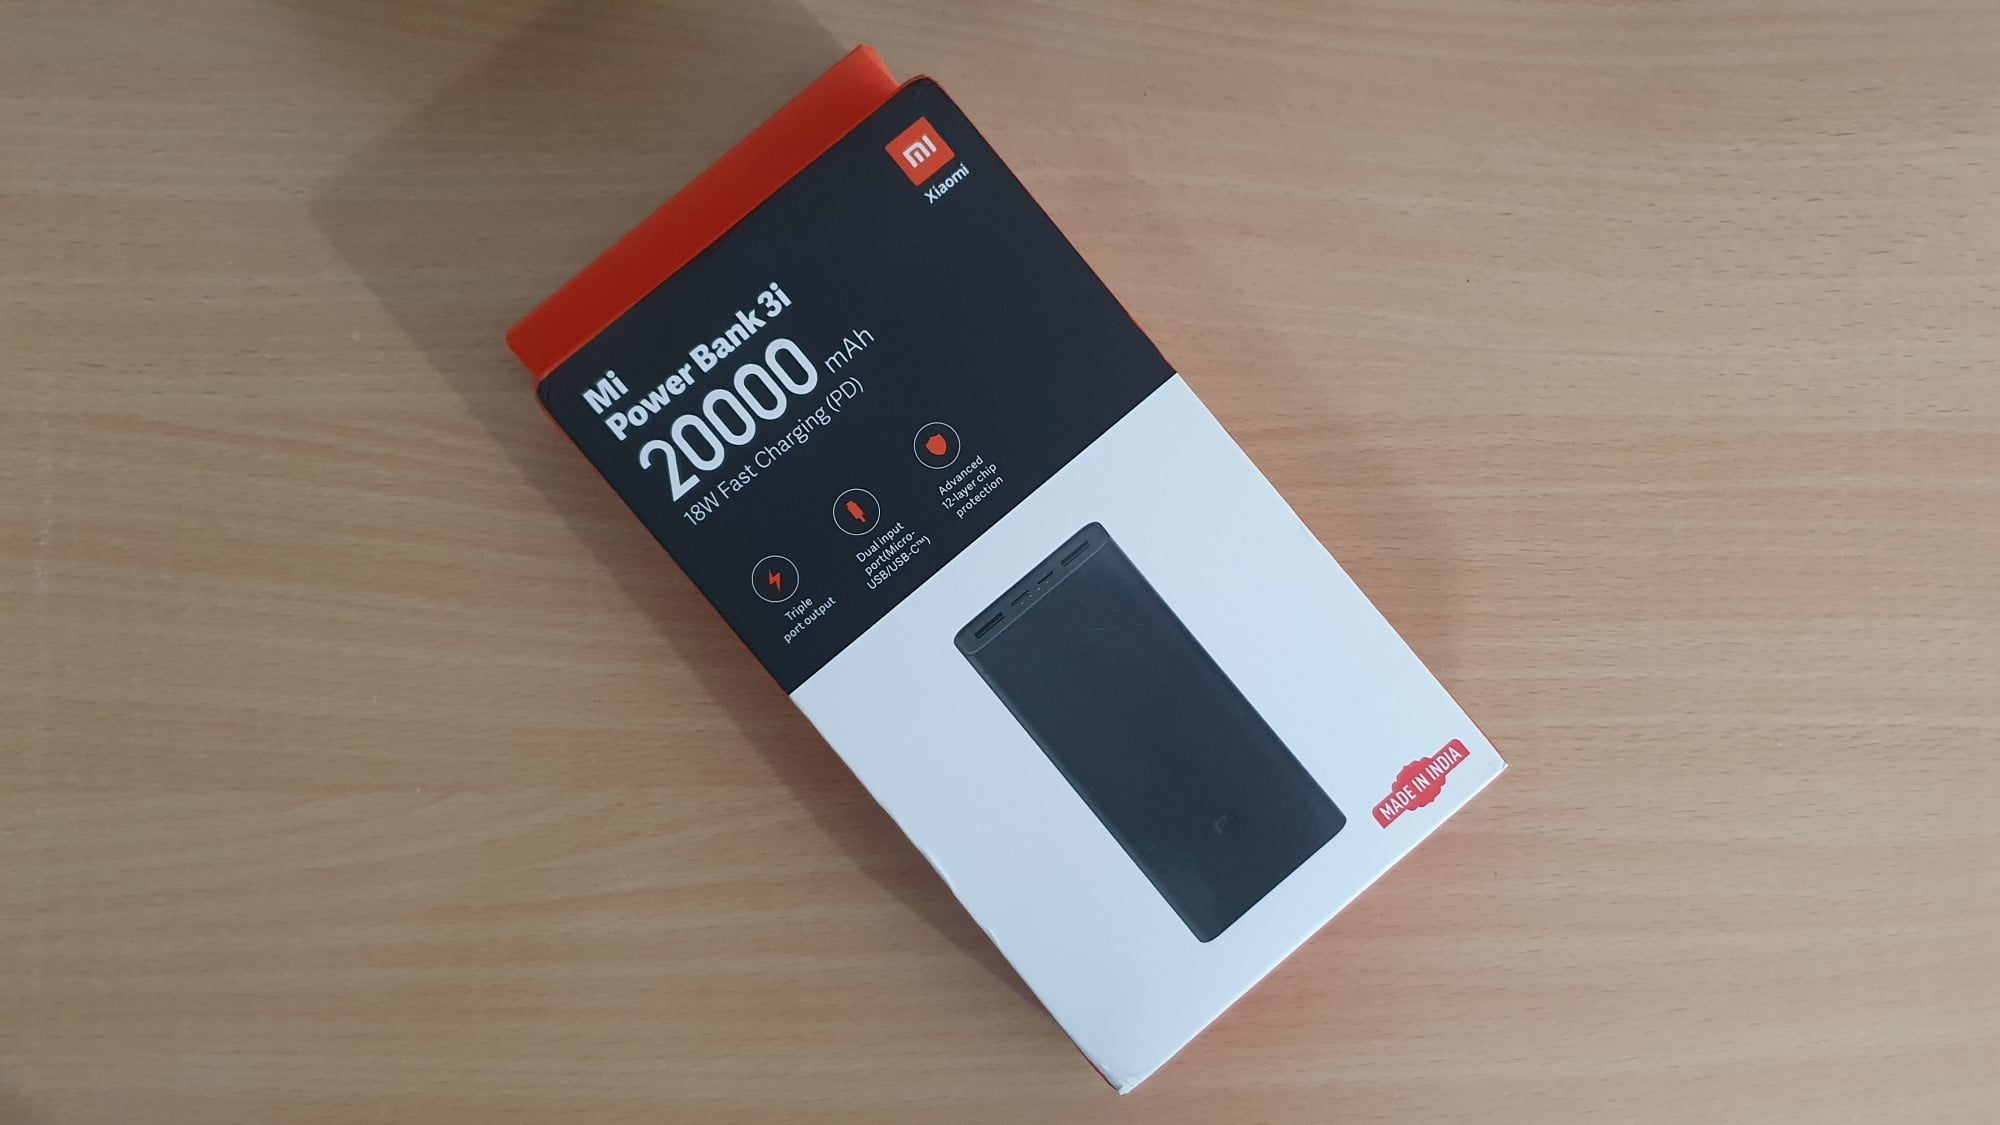 Mi Power Bank 3i featured